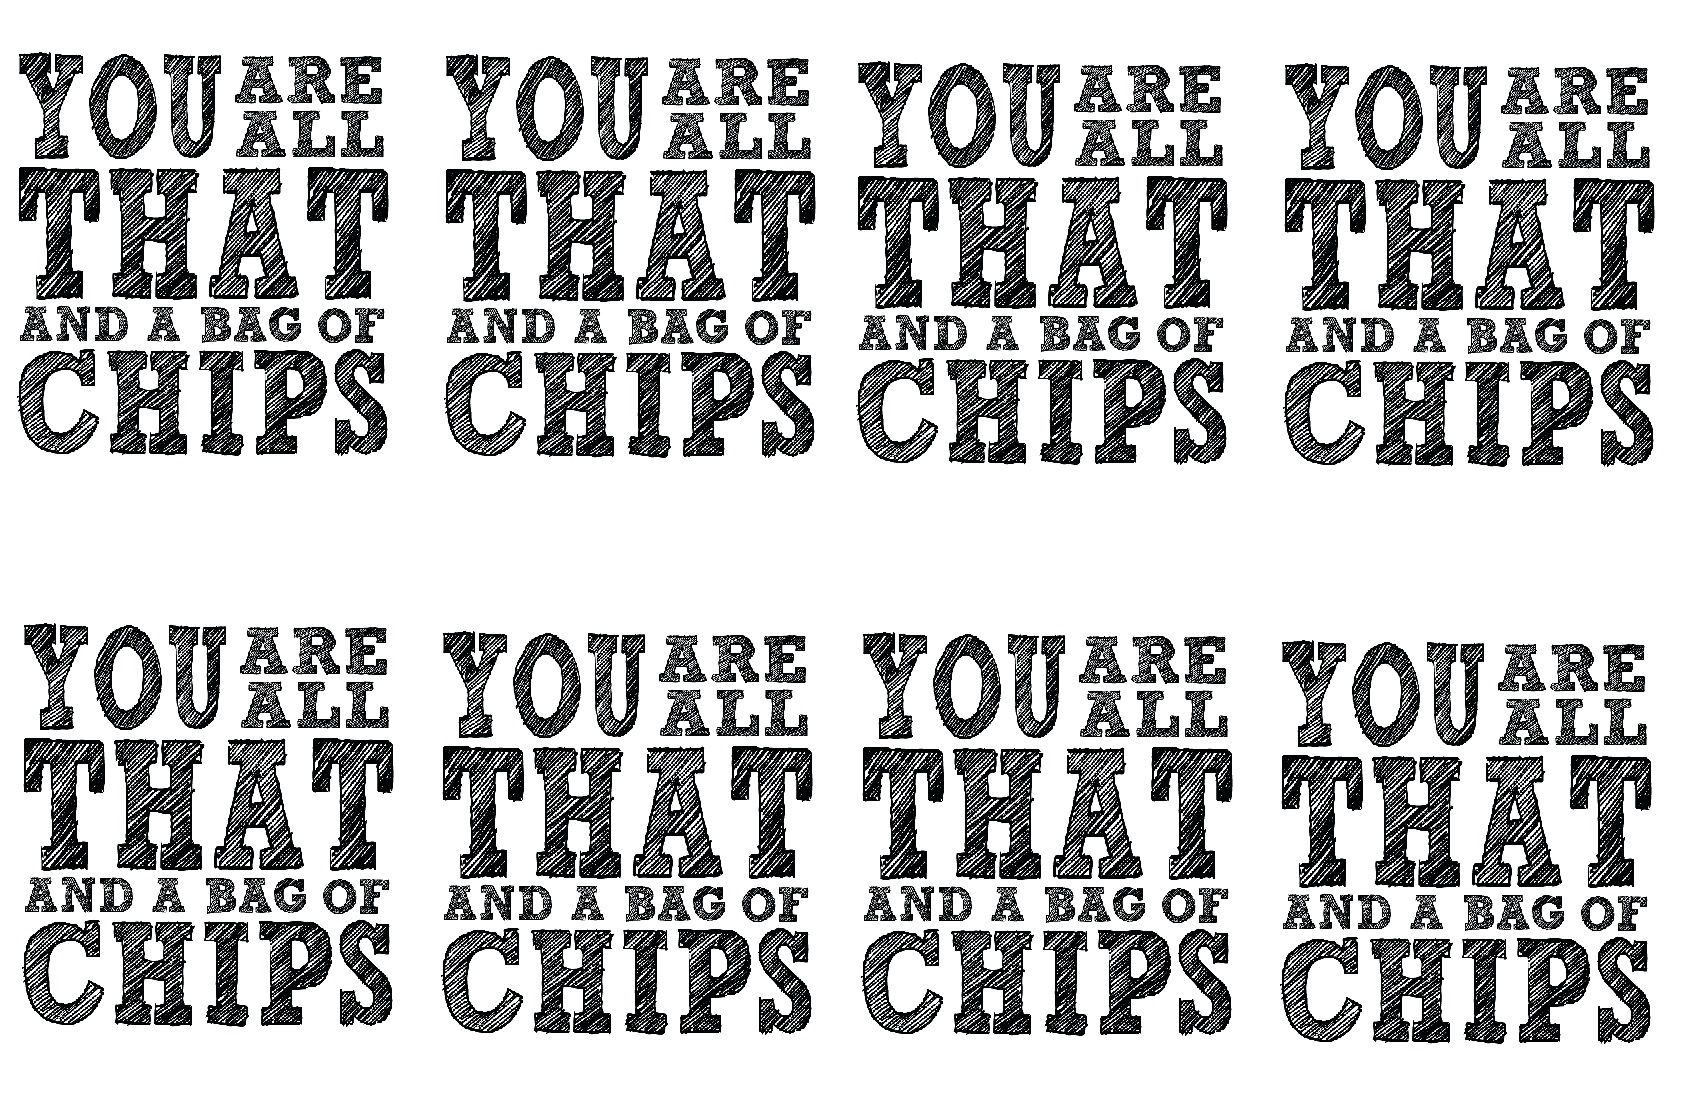 image about You're All That and a Bag of Chips Free Printable referred to as All That and a bag of chips - Chip bag reward tag. Foolish